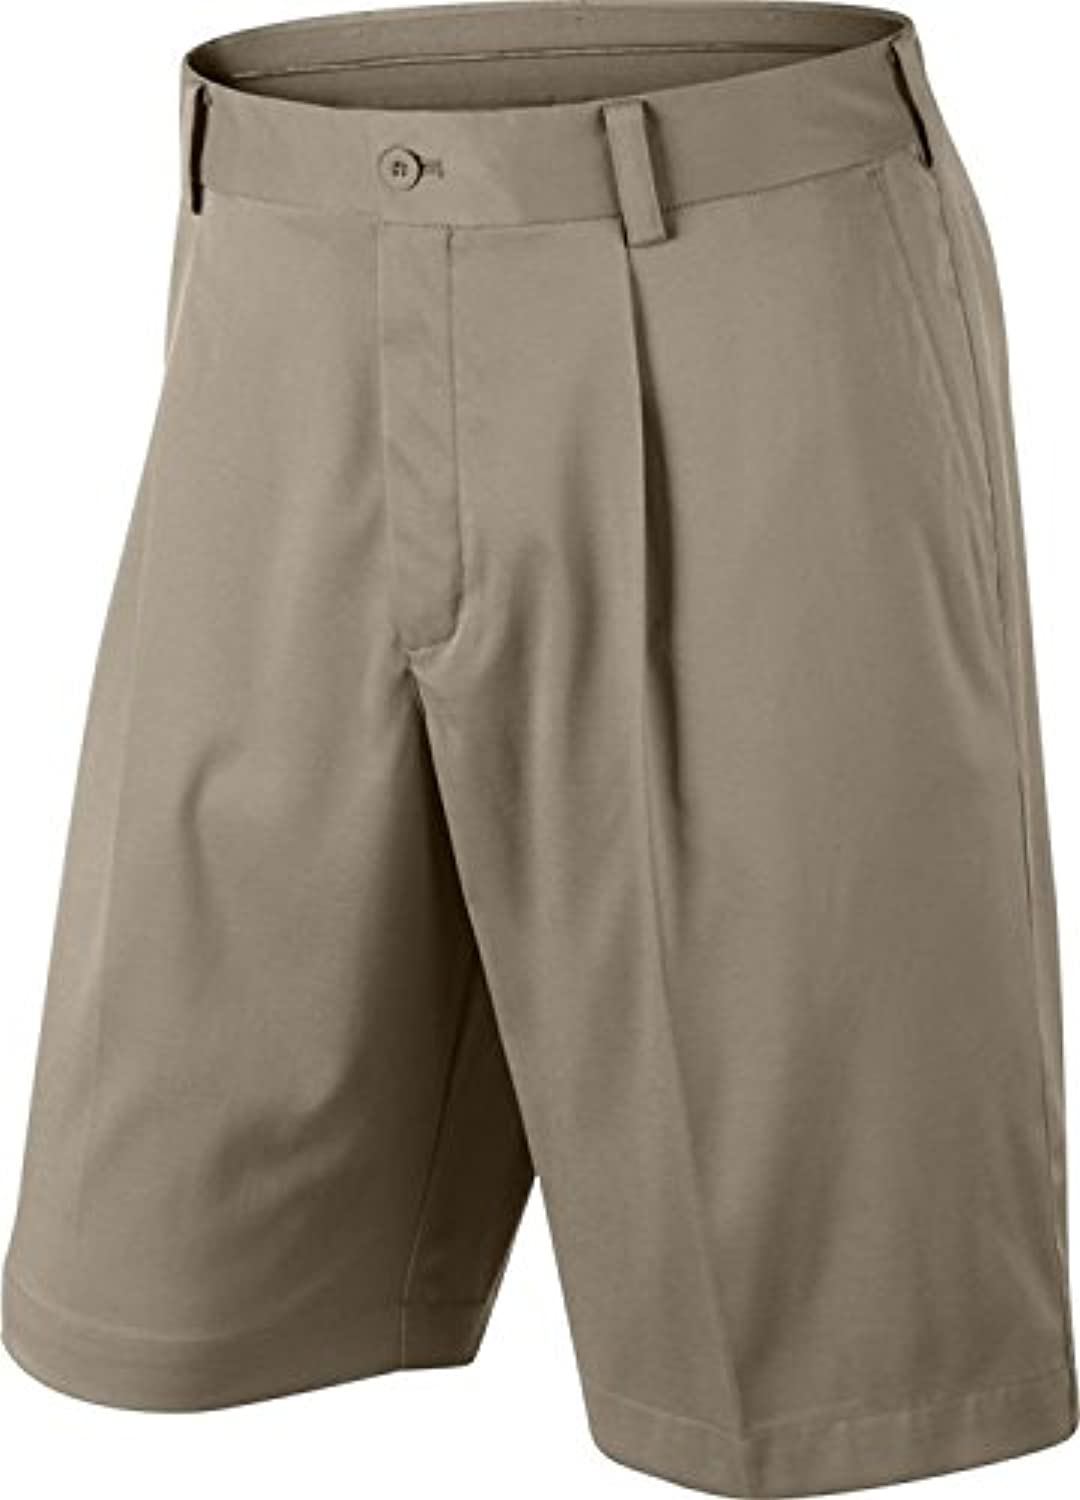 Nike Golf Men's Tour Pleat Short   30   Khaki